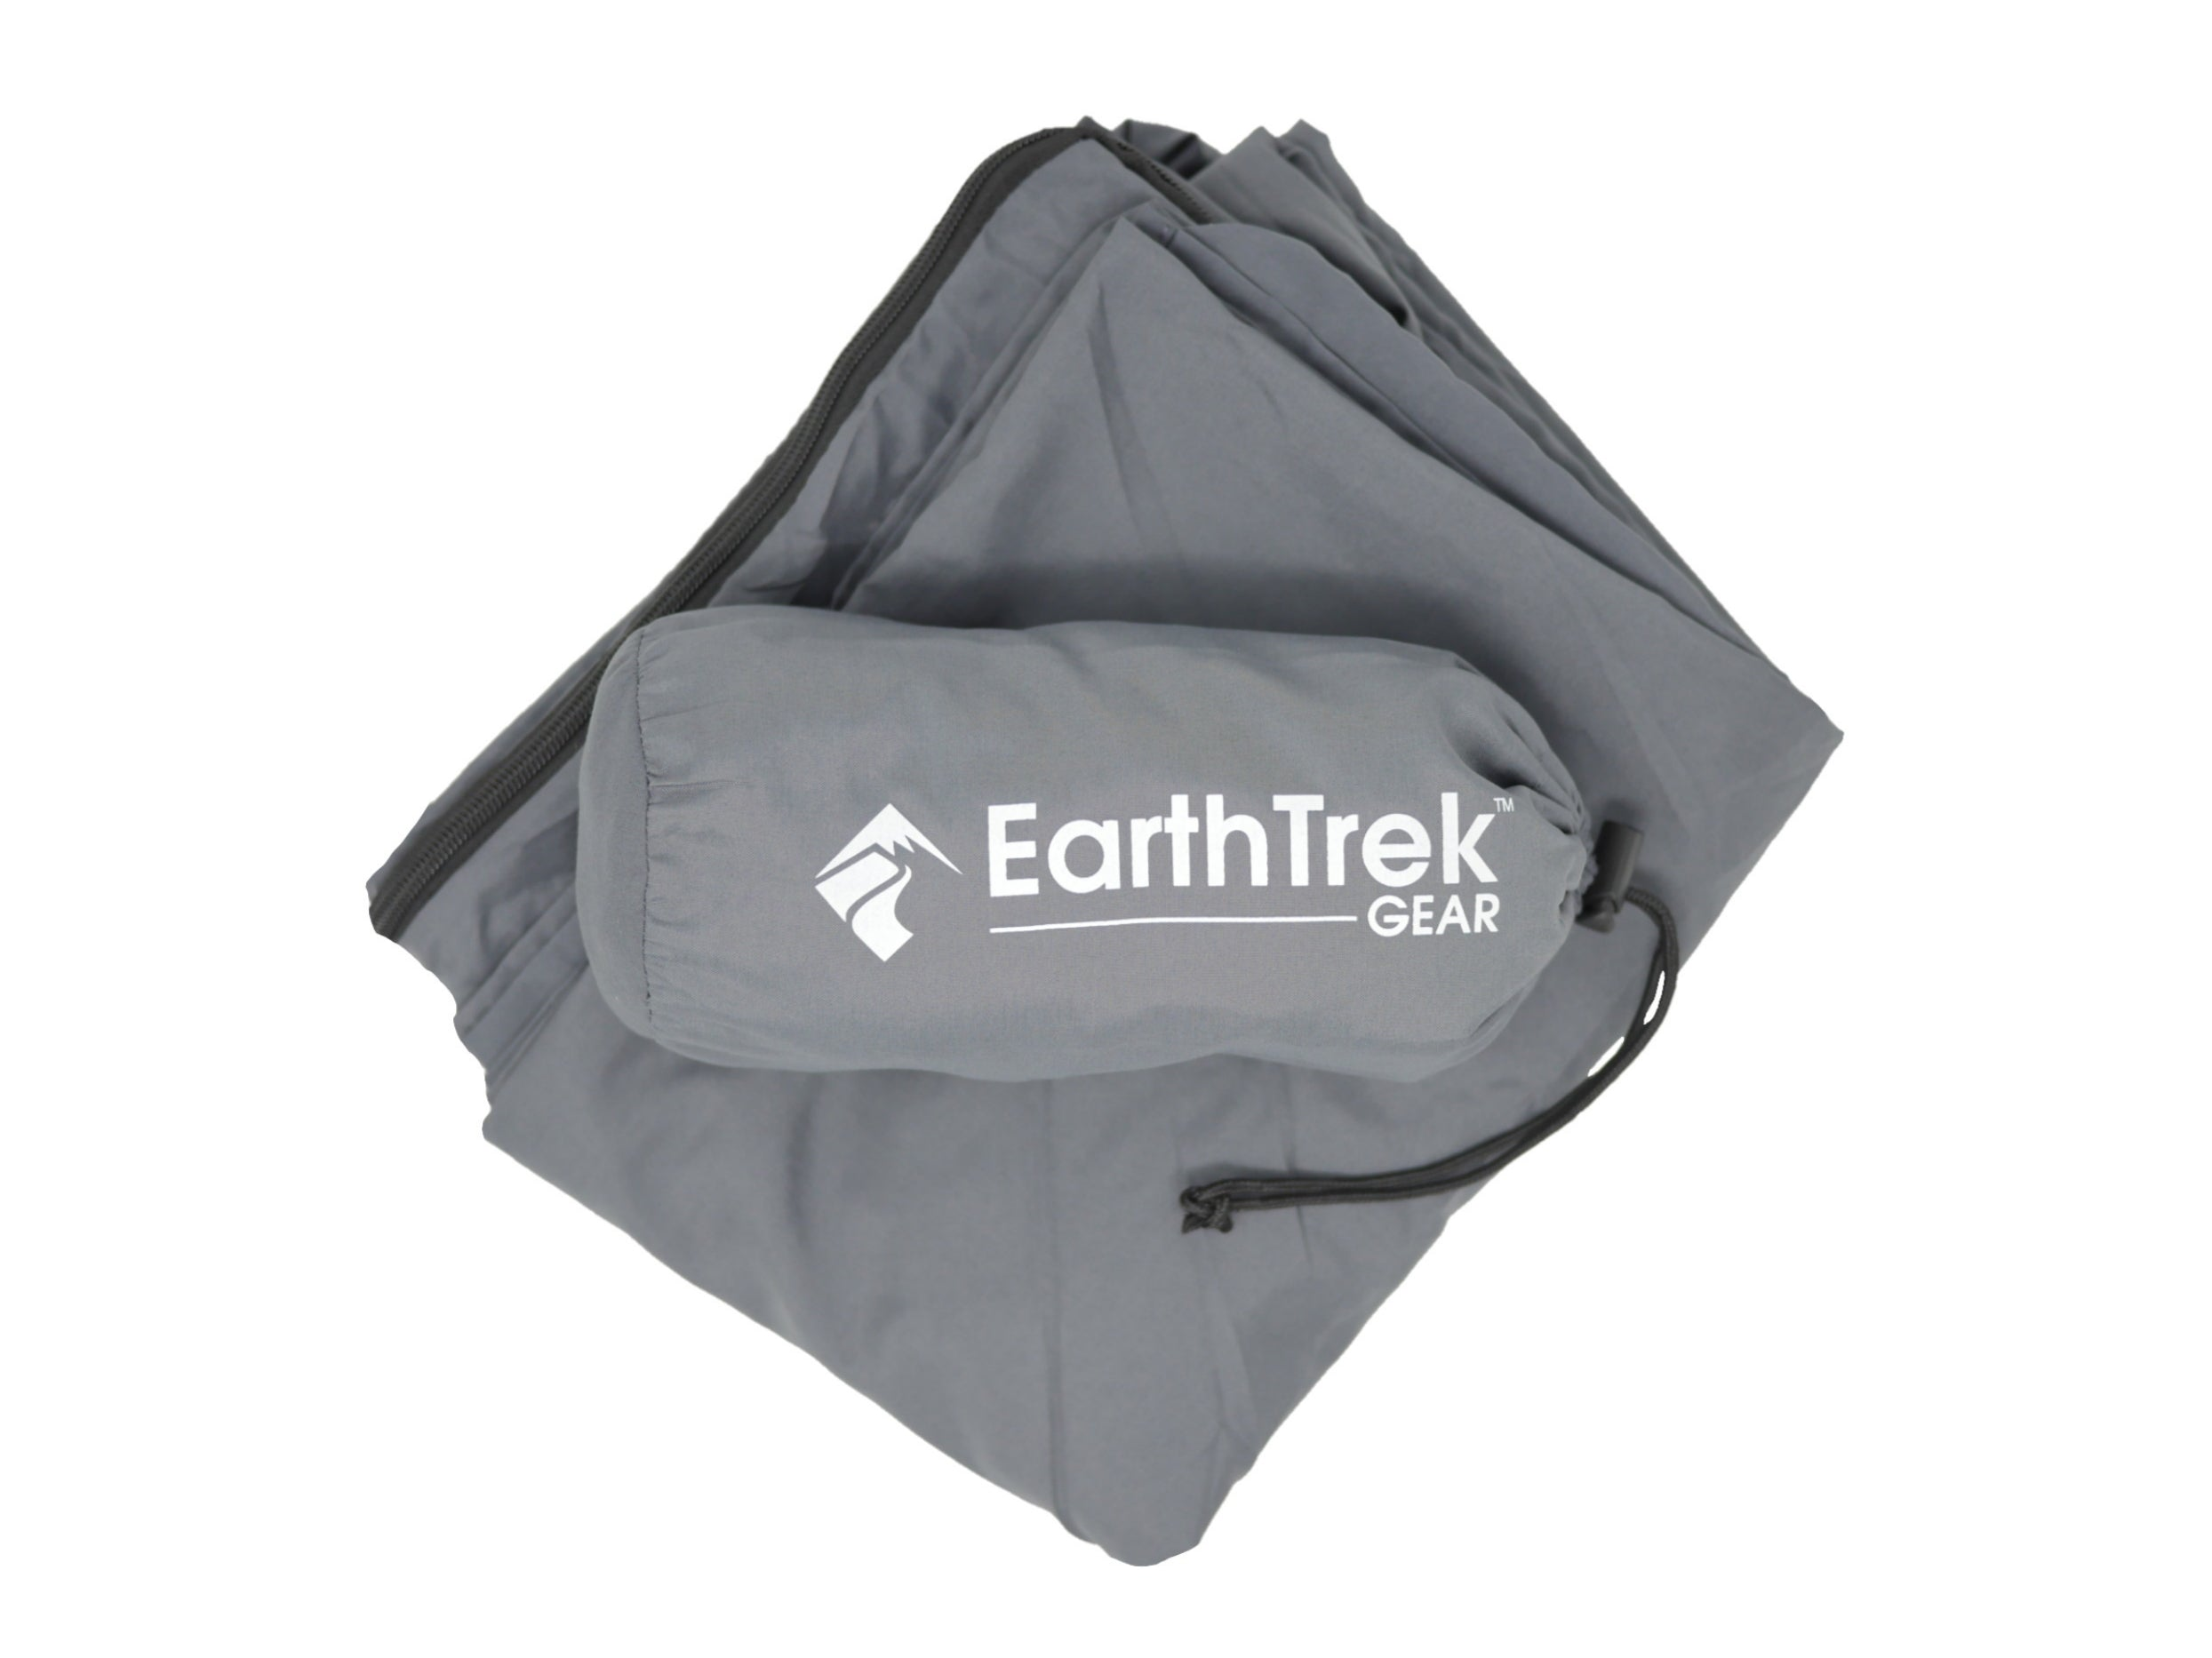 extra-large-comfy-travel-sleepingbag-liner-folded-for-camping